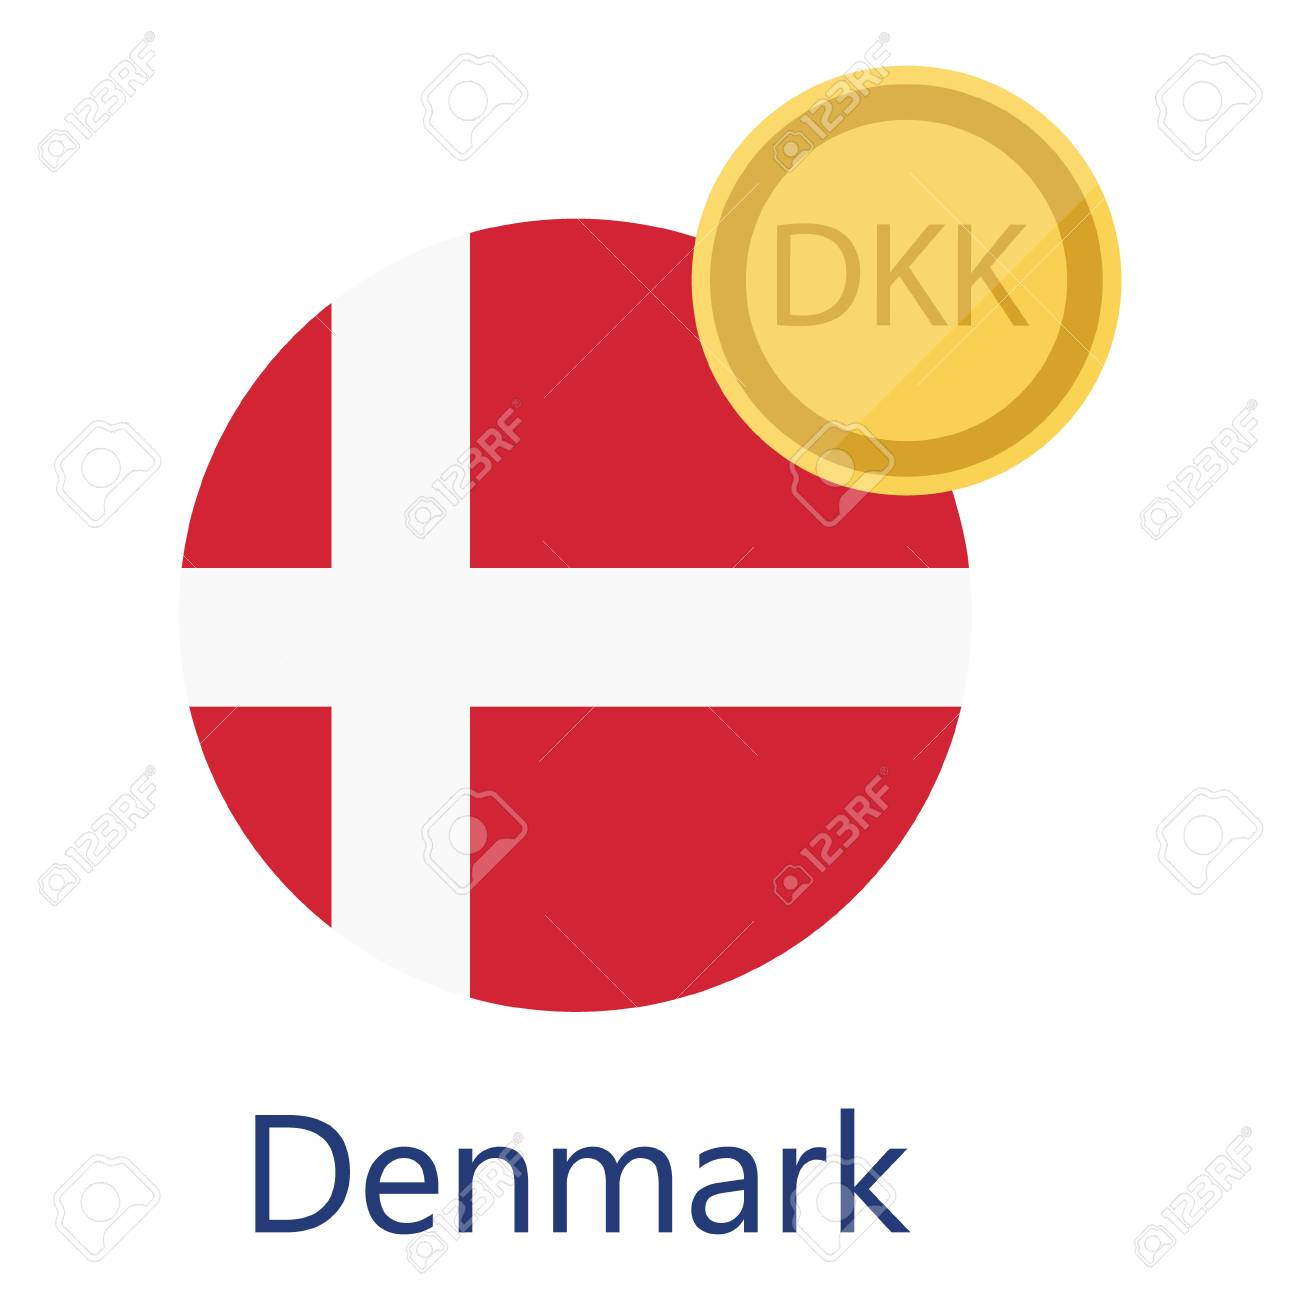 Raster Illustration Denmark Round Flag And Currency Symbols Dkk